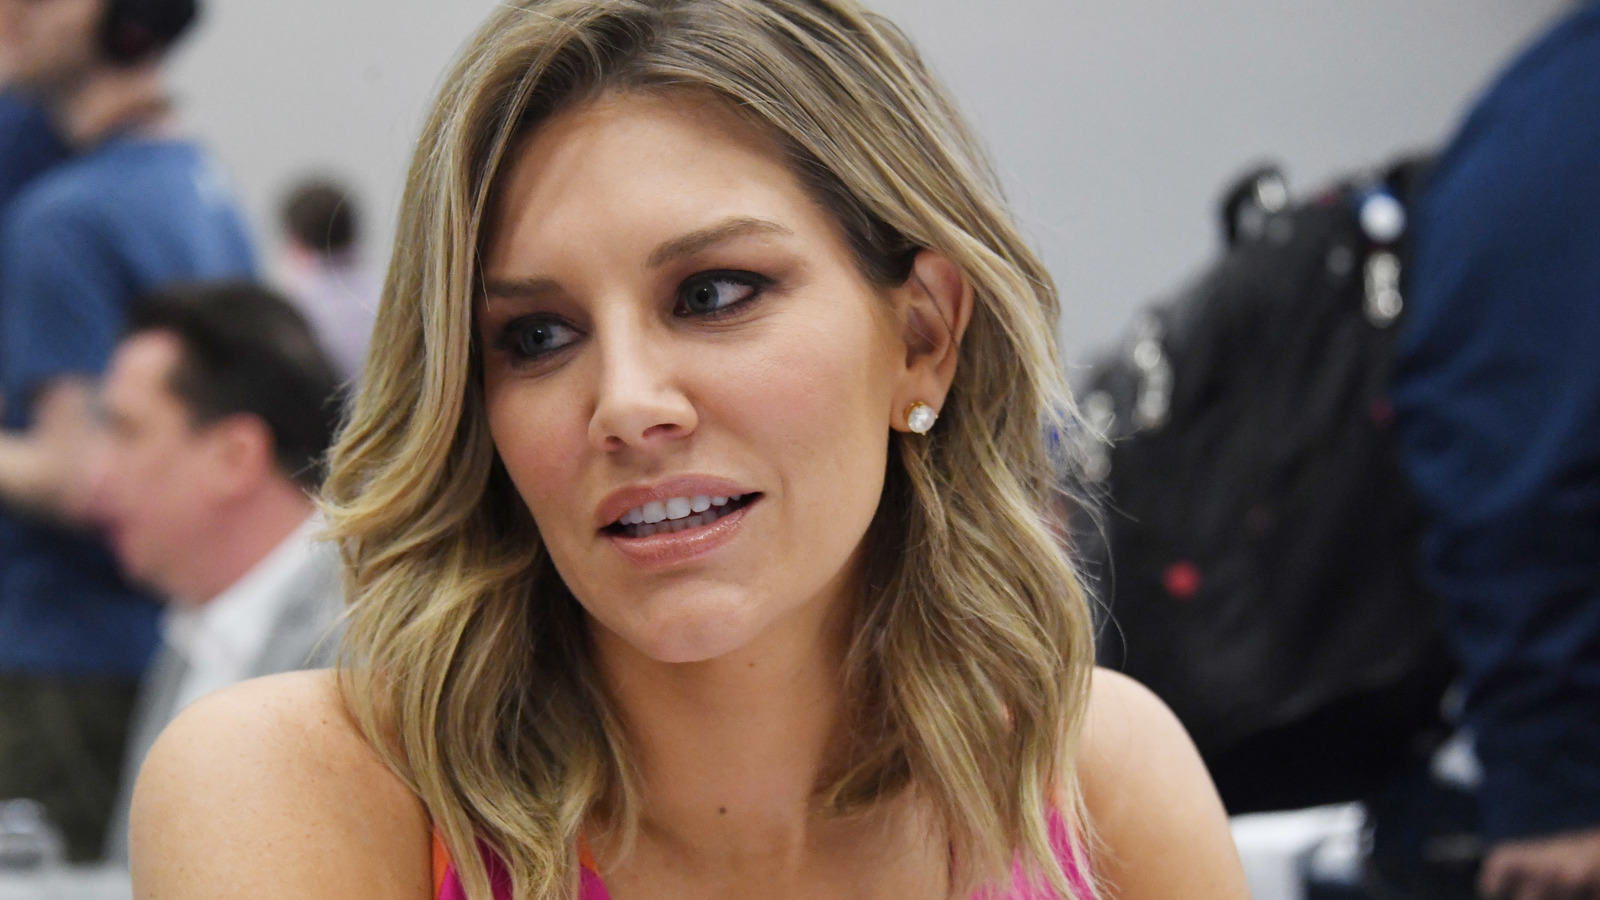 ICloud Charissa Thompson nude (77 foto and video), Sexy, Cleavage, Instagram, butt 2019